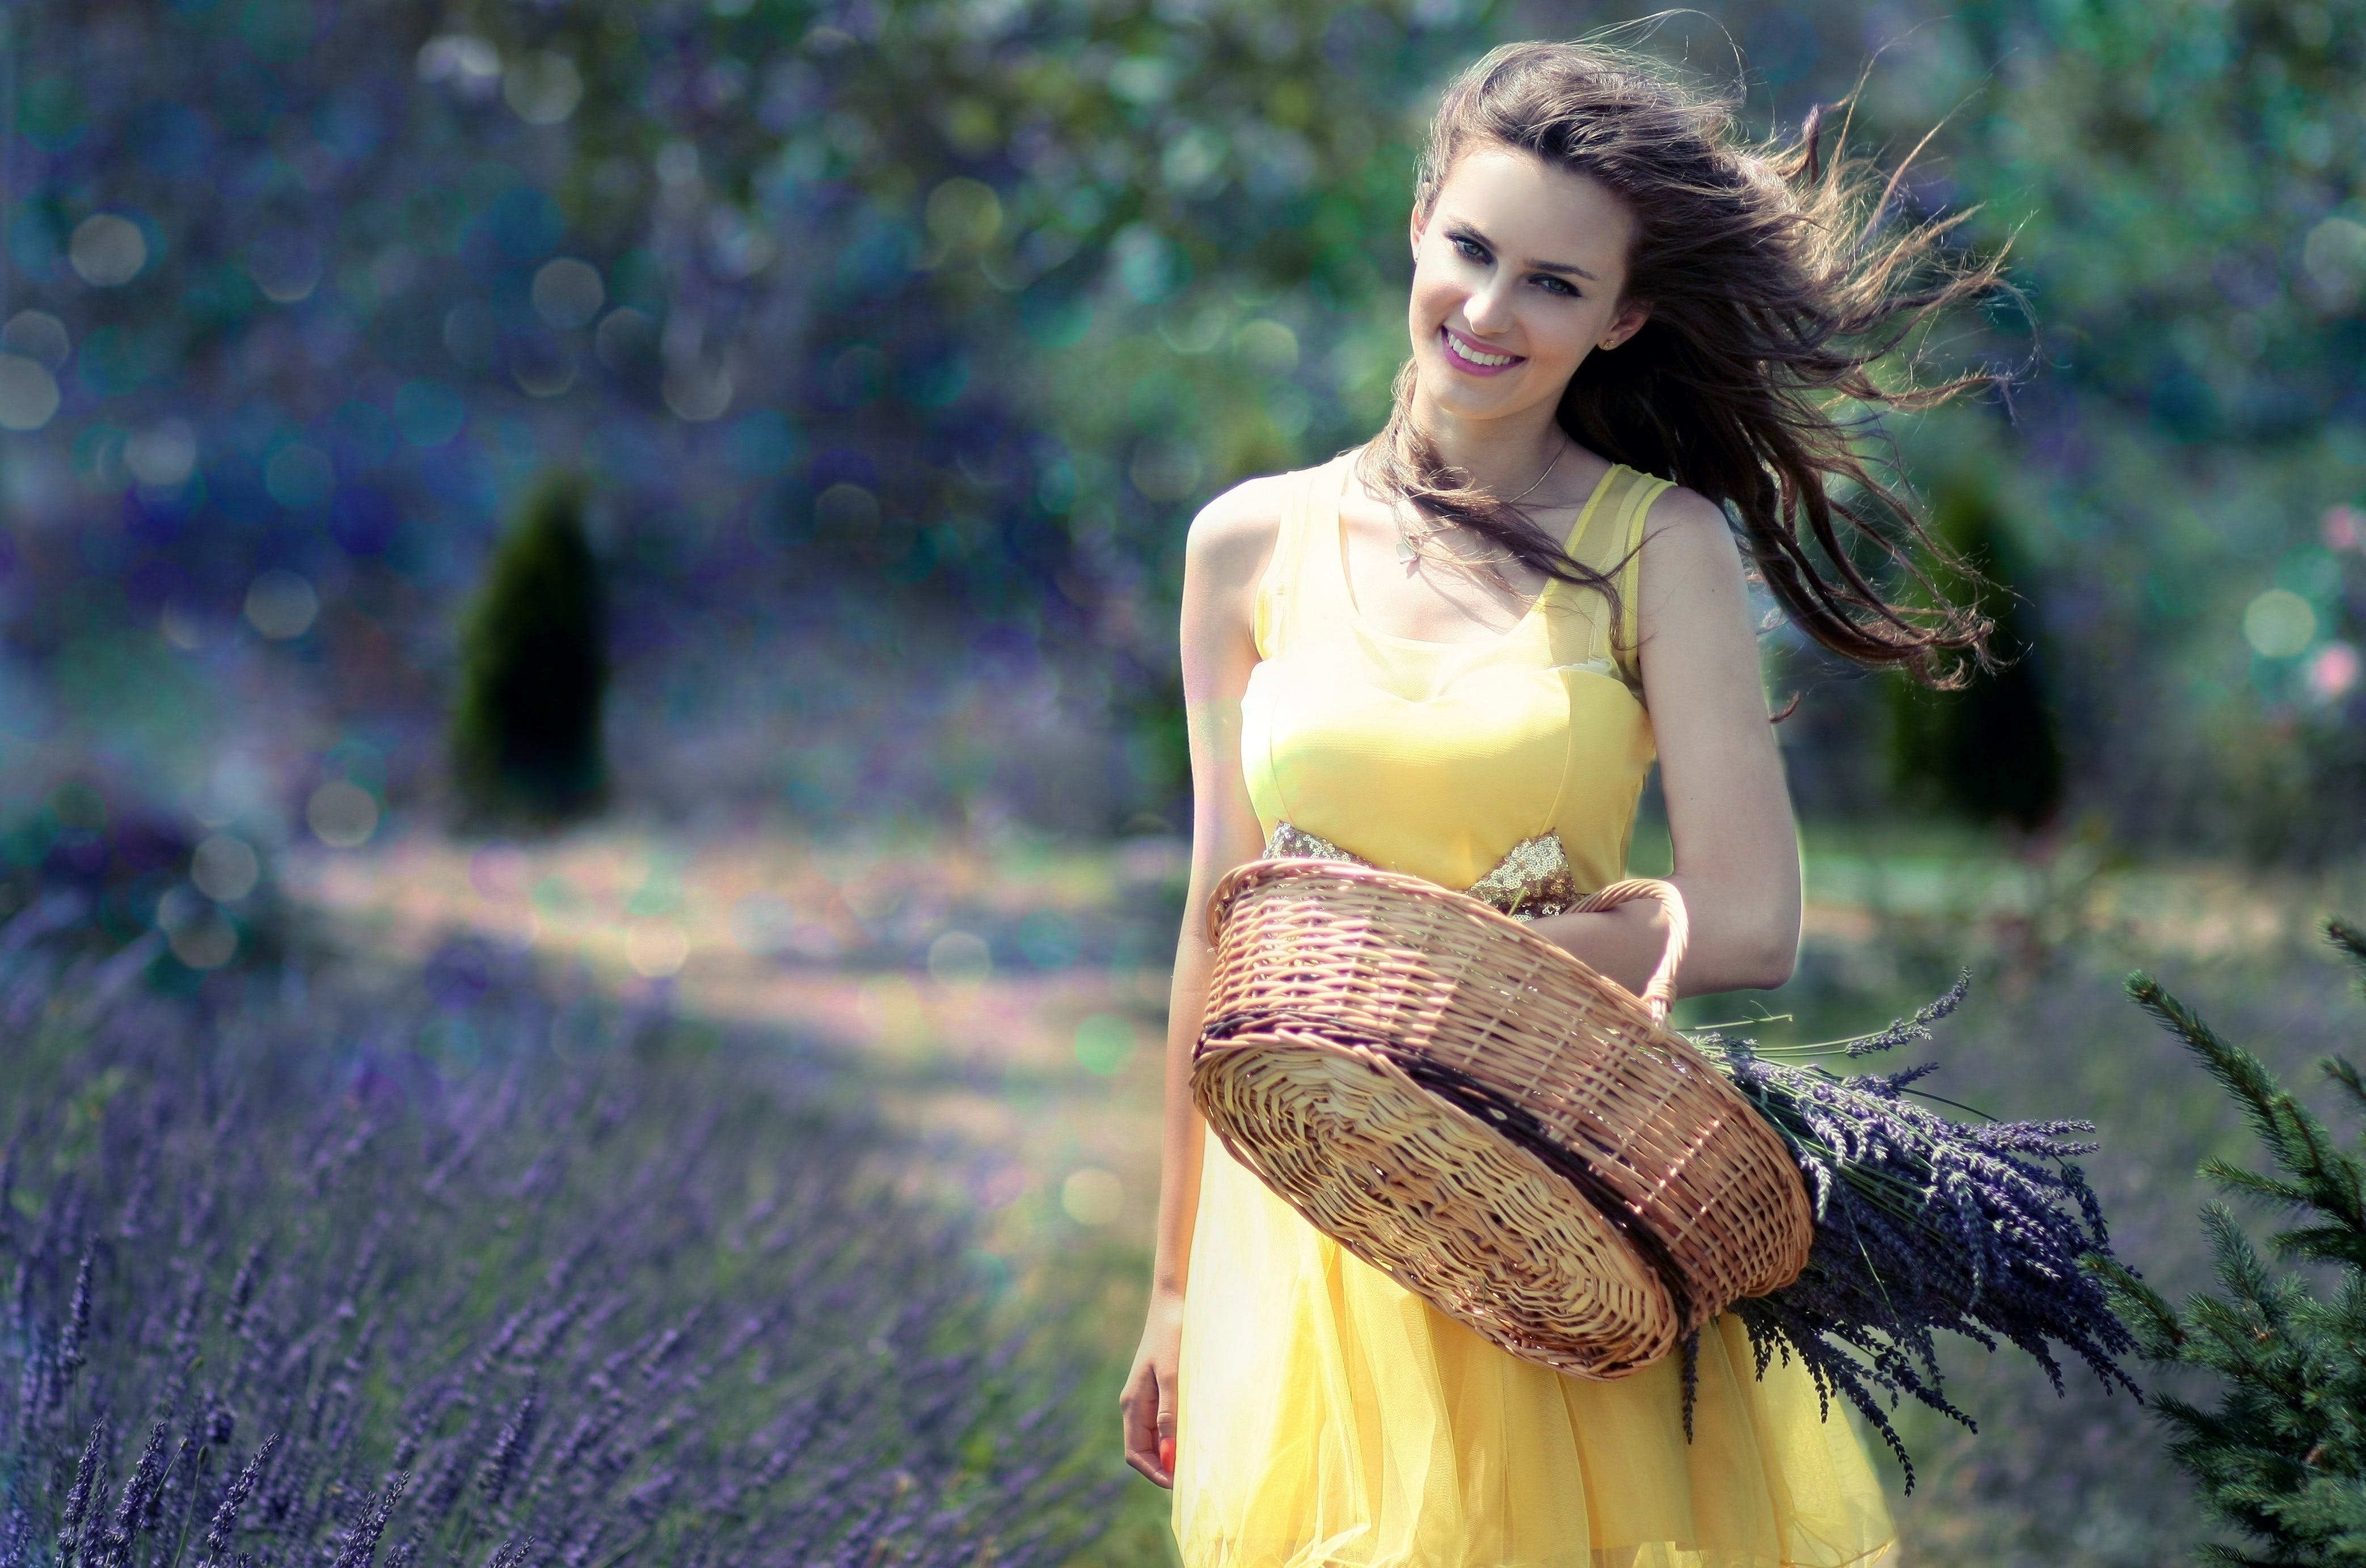 Woman in Yellow Maxi Dress Holding Brown Woven Picnic Basket Walking During Daytime